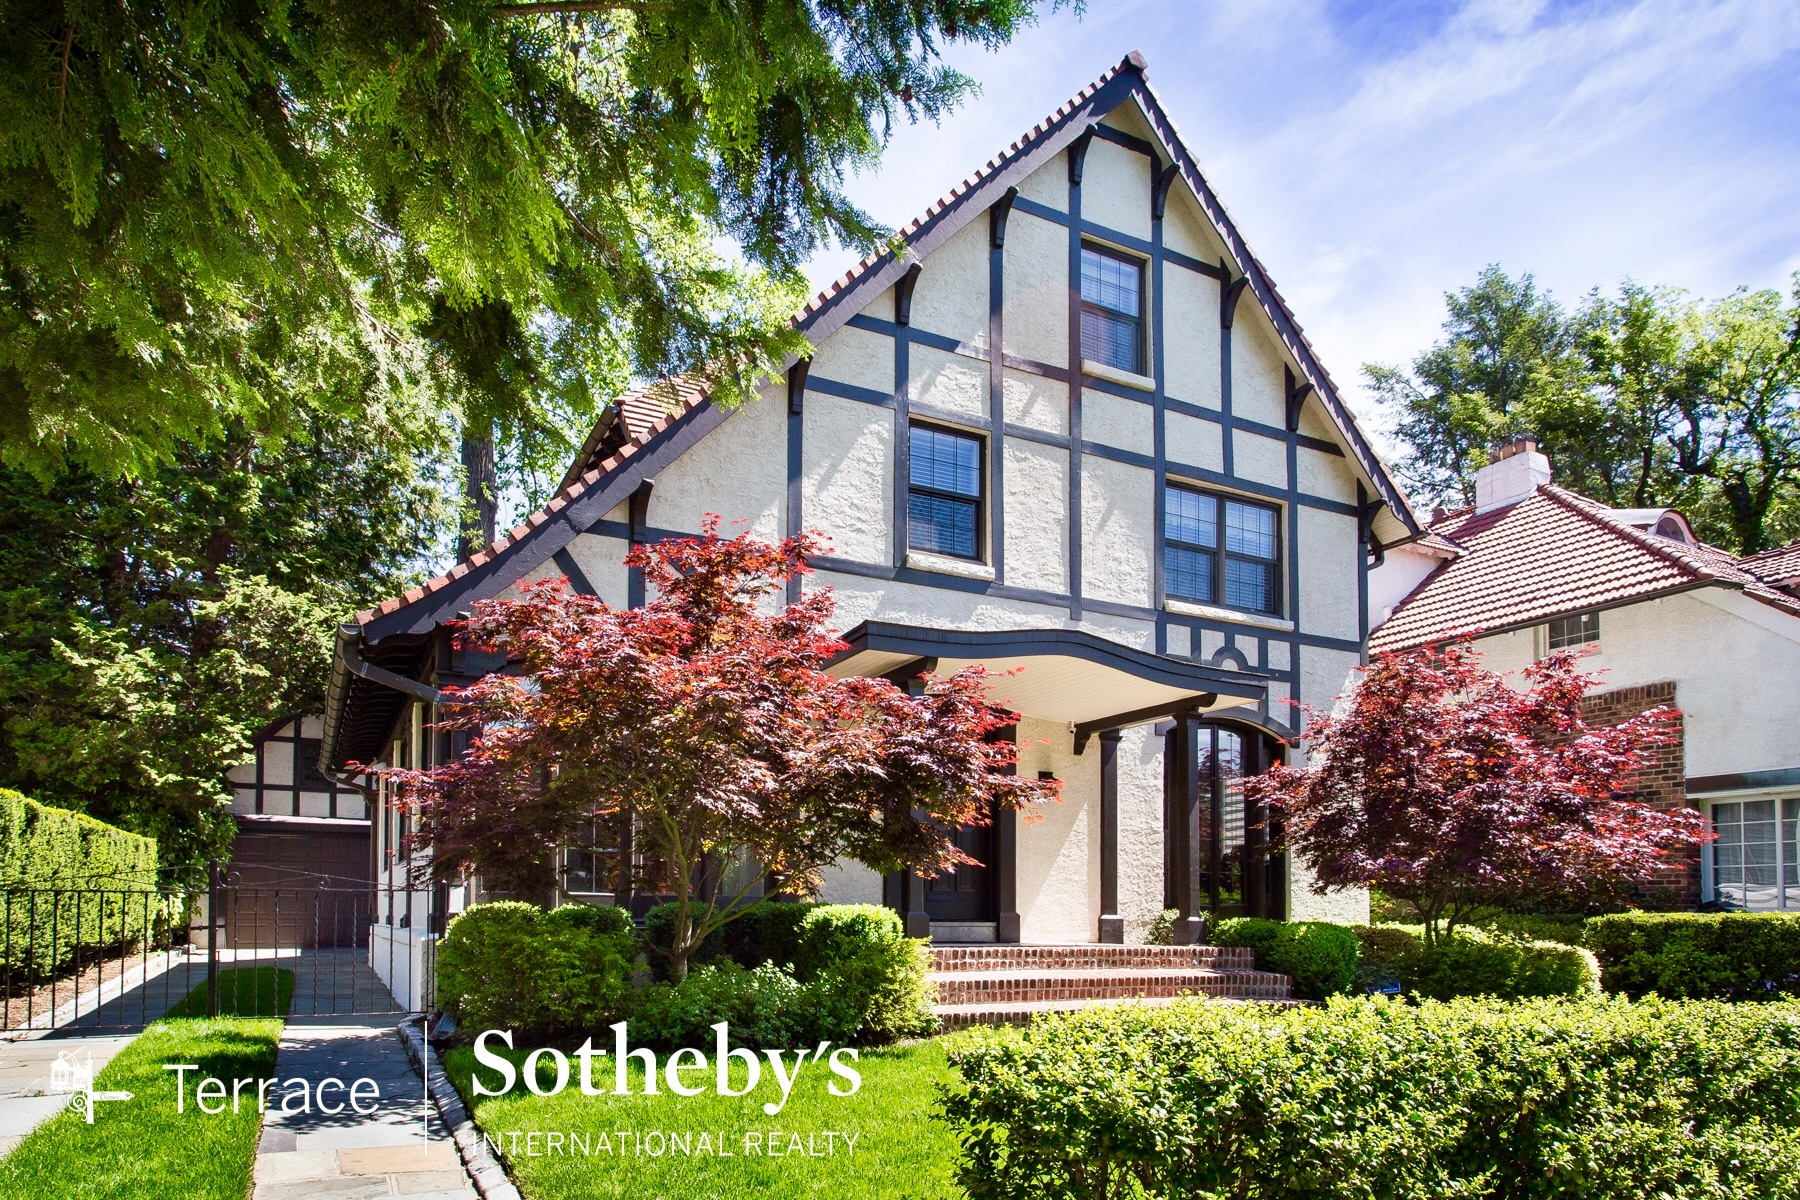 FOREST HILLS QUEENS, NYC REAL ESTATE